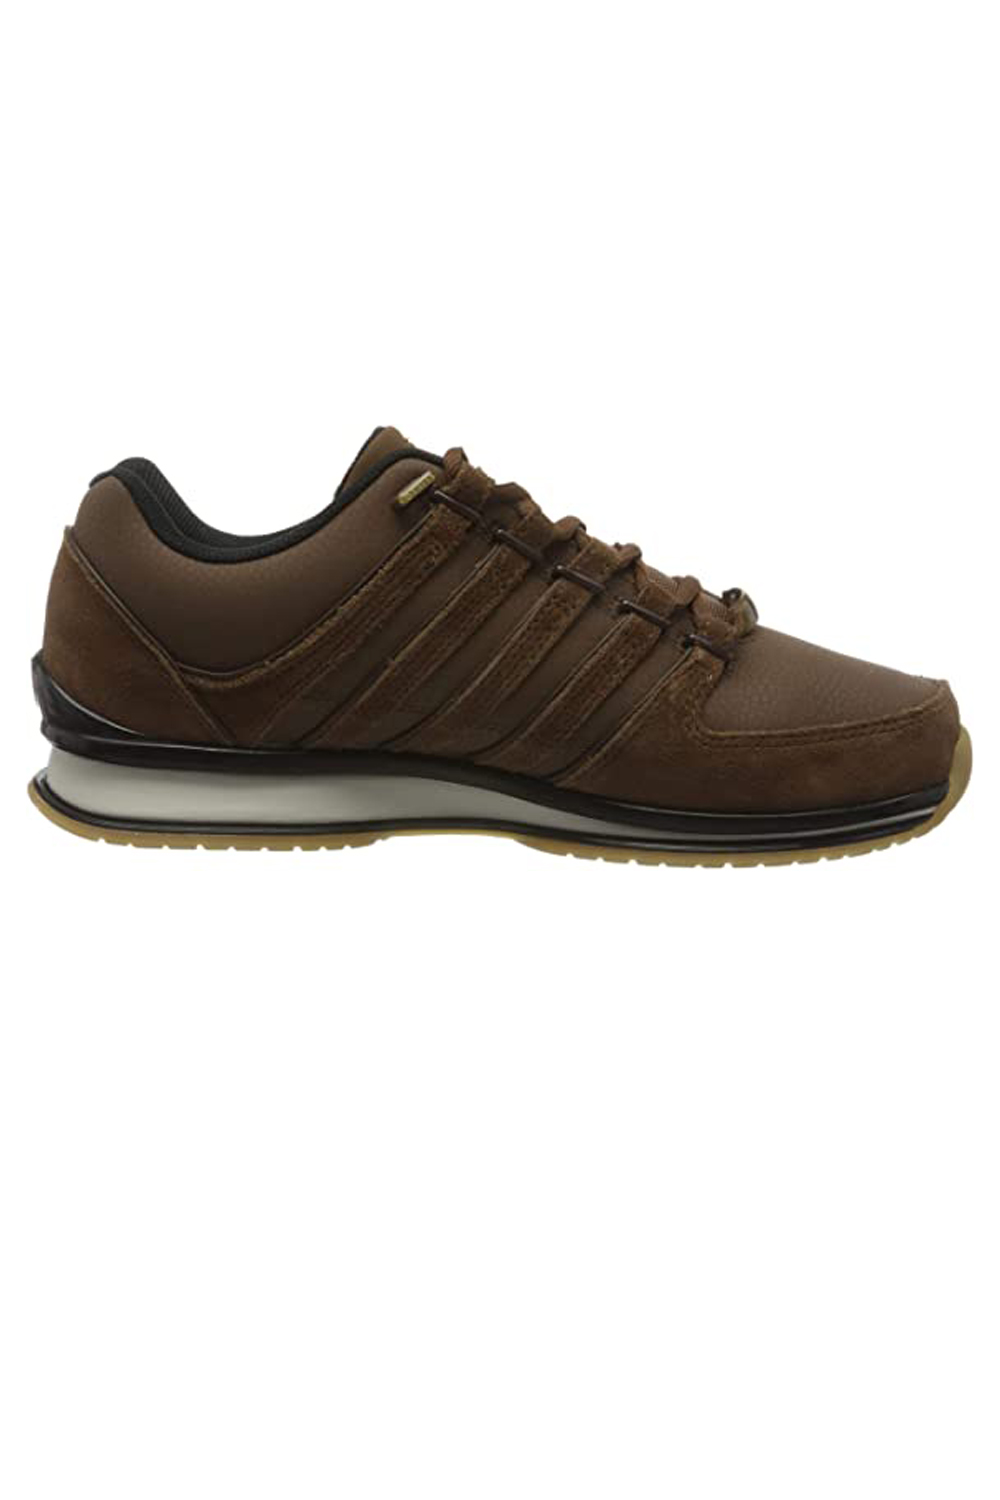 thumbnail 18 - K-Swiss Mens Comfortable Low Top Classic Leather Suede Rinzler Trainers Sneakers